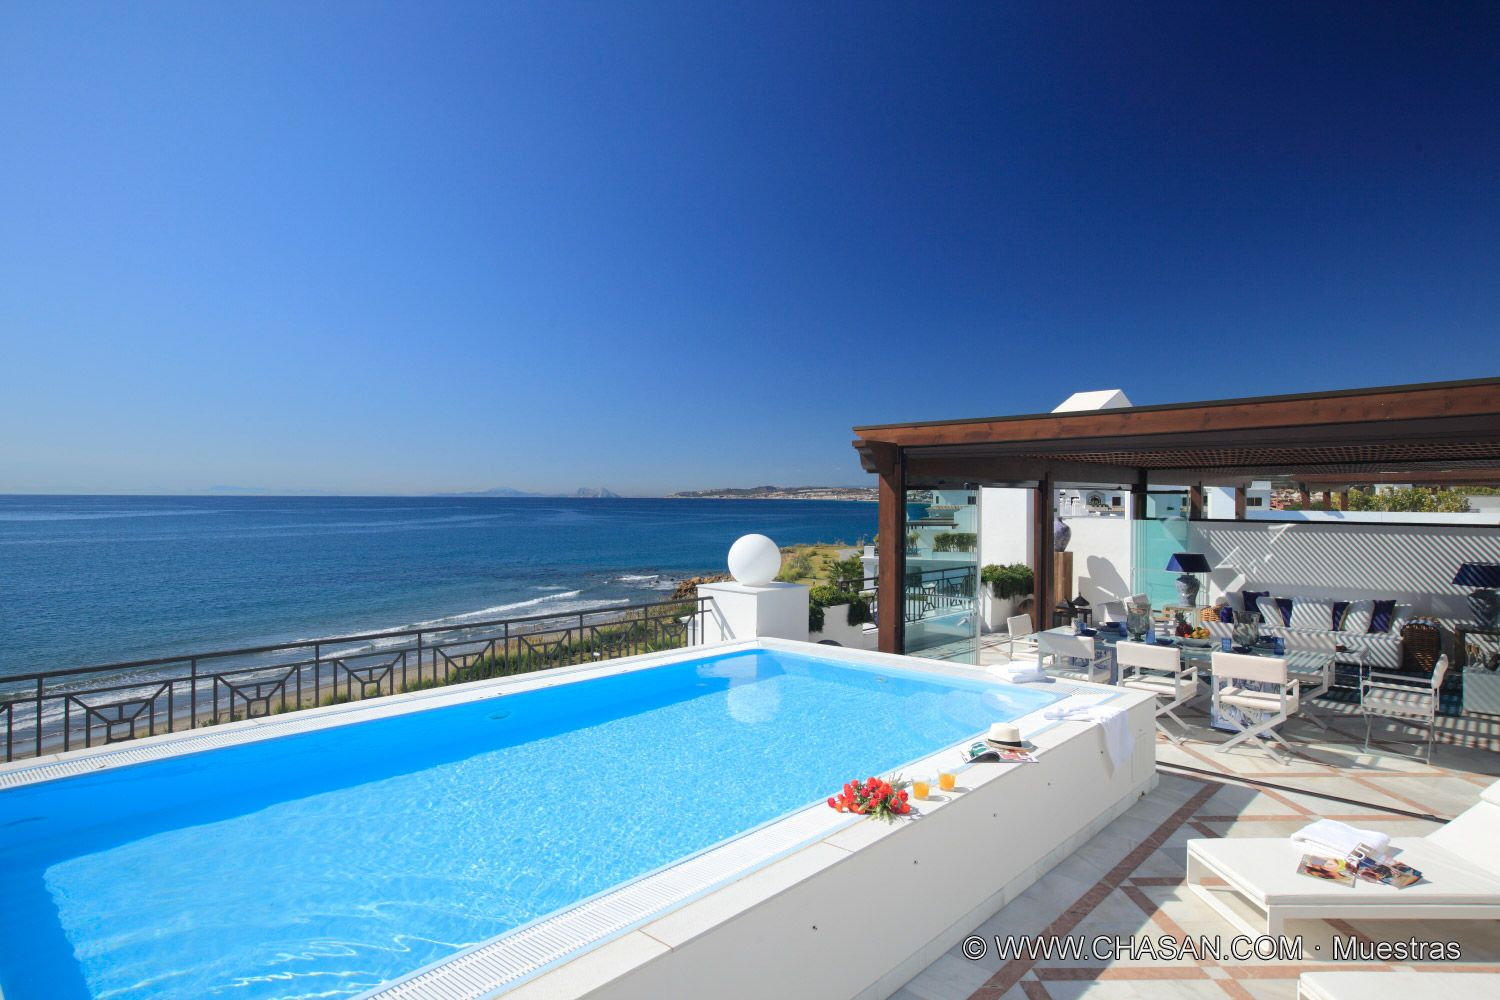 Pool Kaufen Coop 5 Amazing Luxury Marbella Homes For Sale With Pools Realista